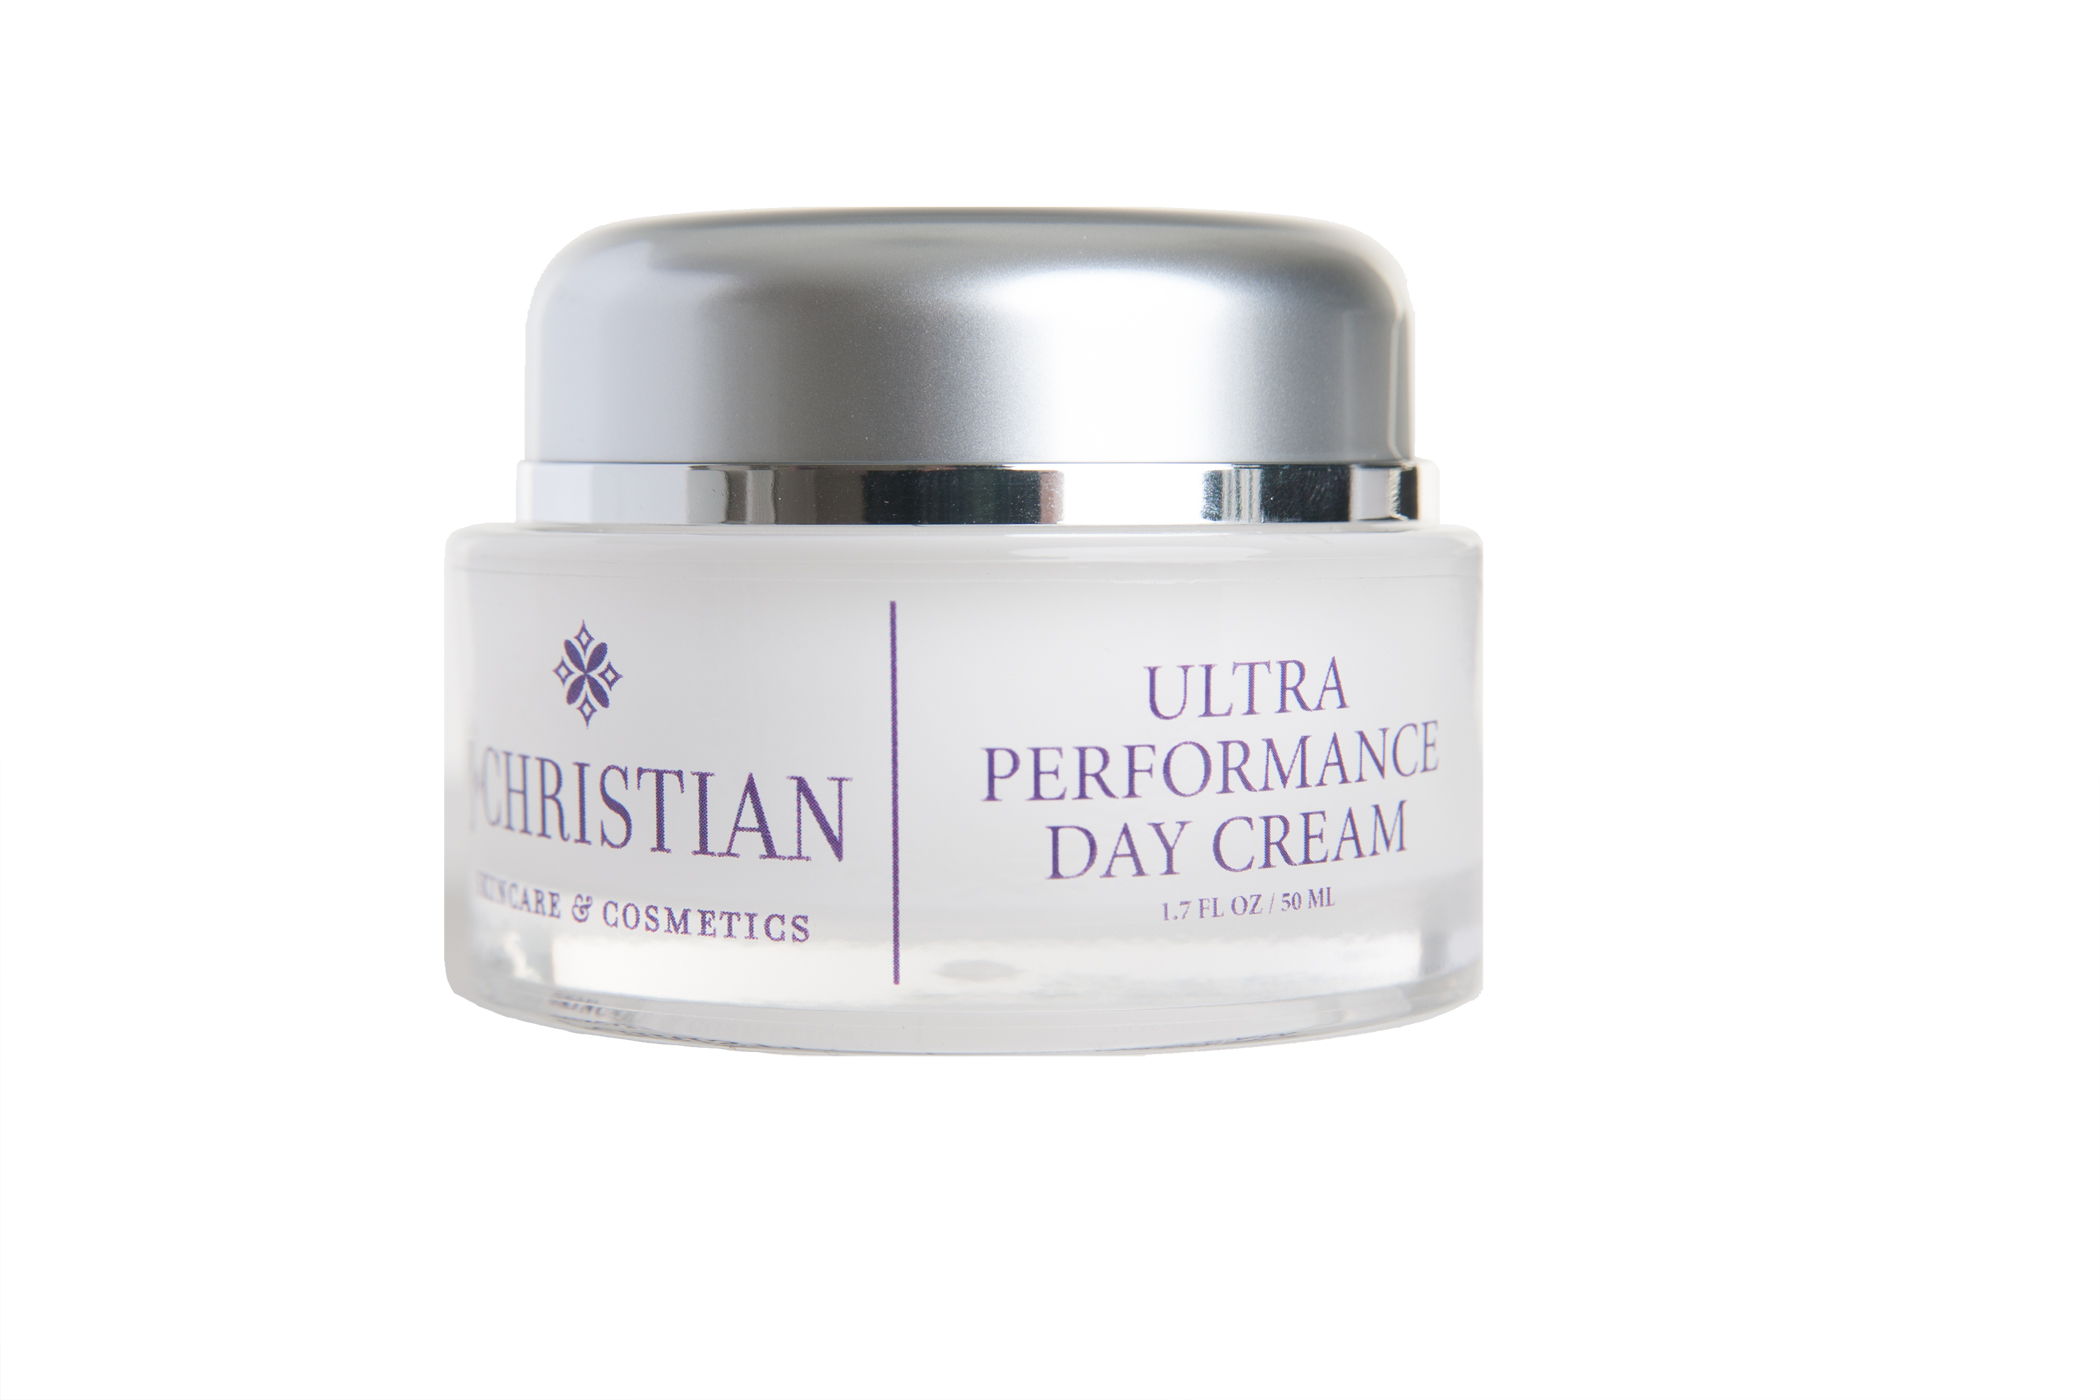 Ultra Performance Day Cream